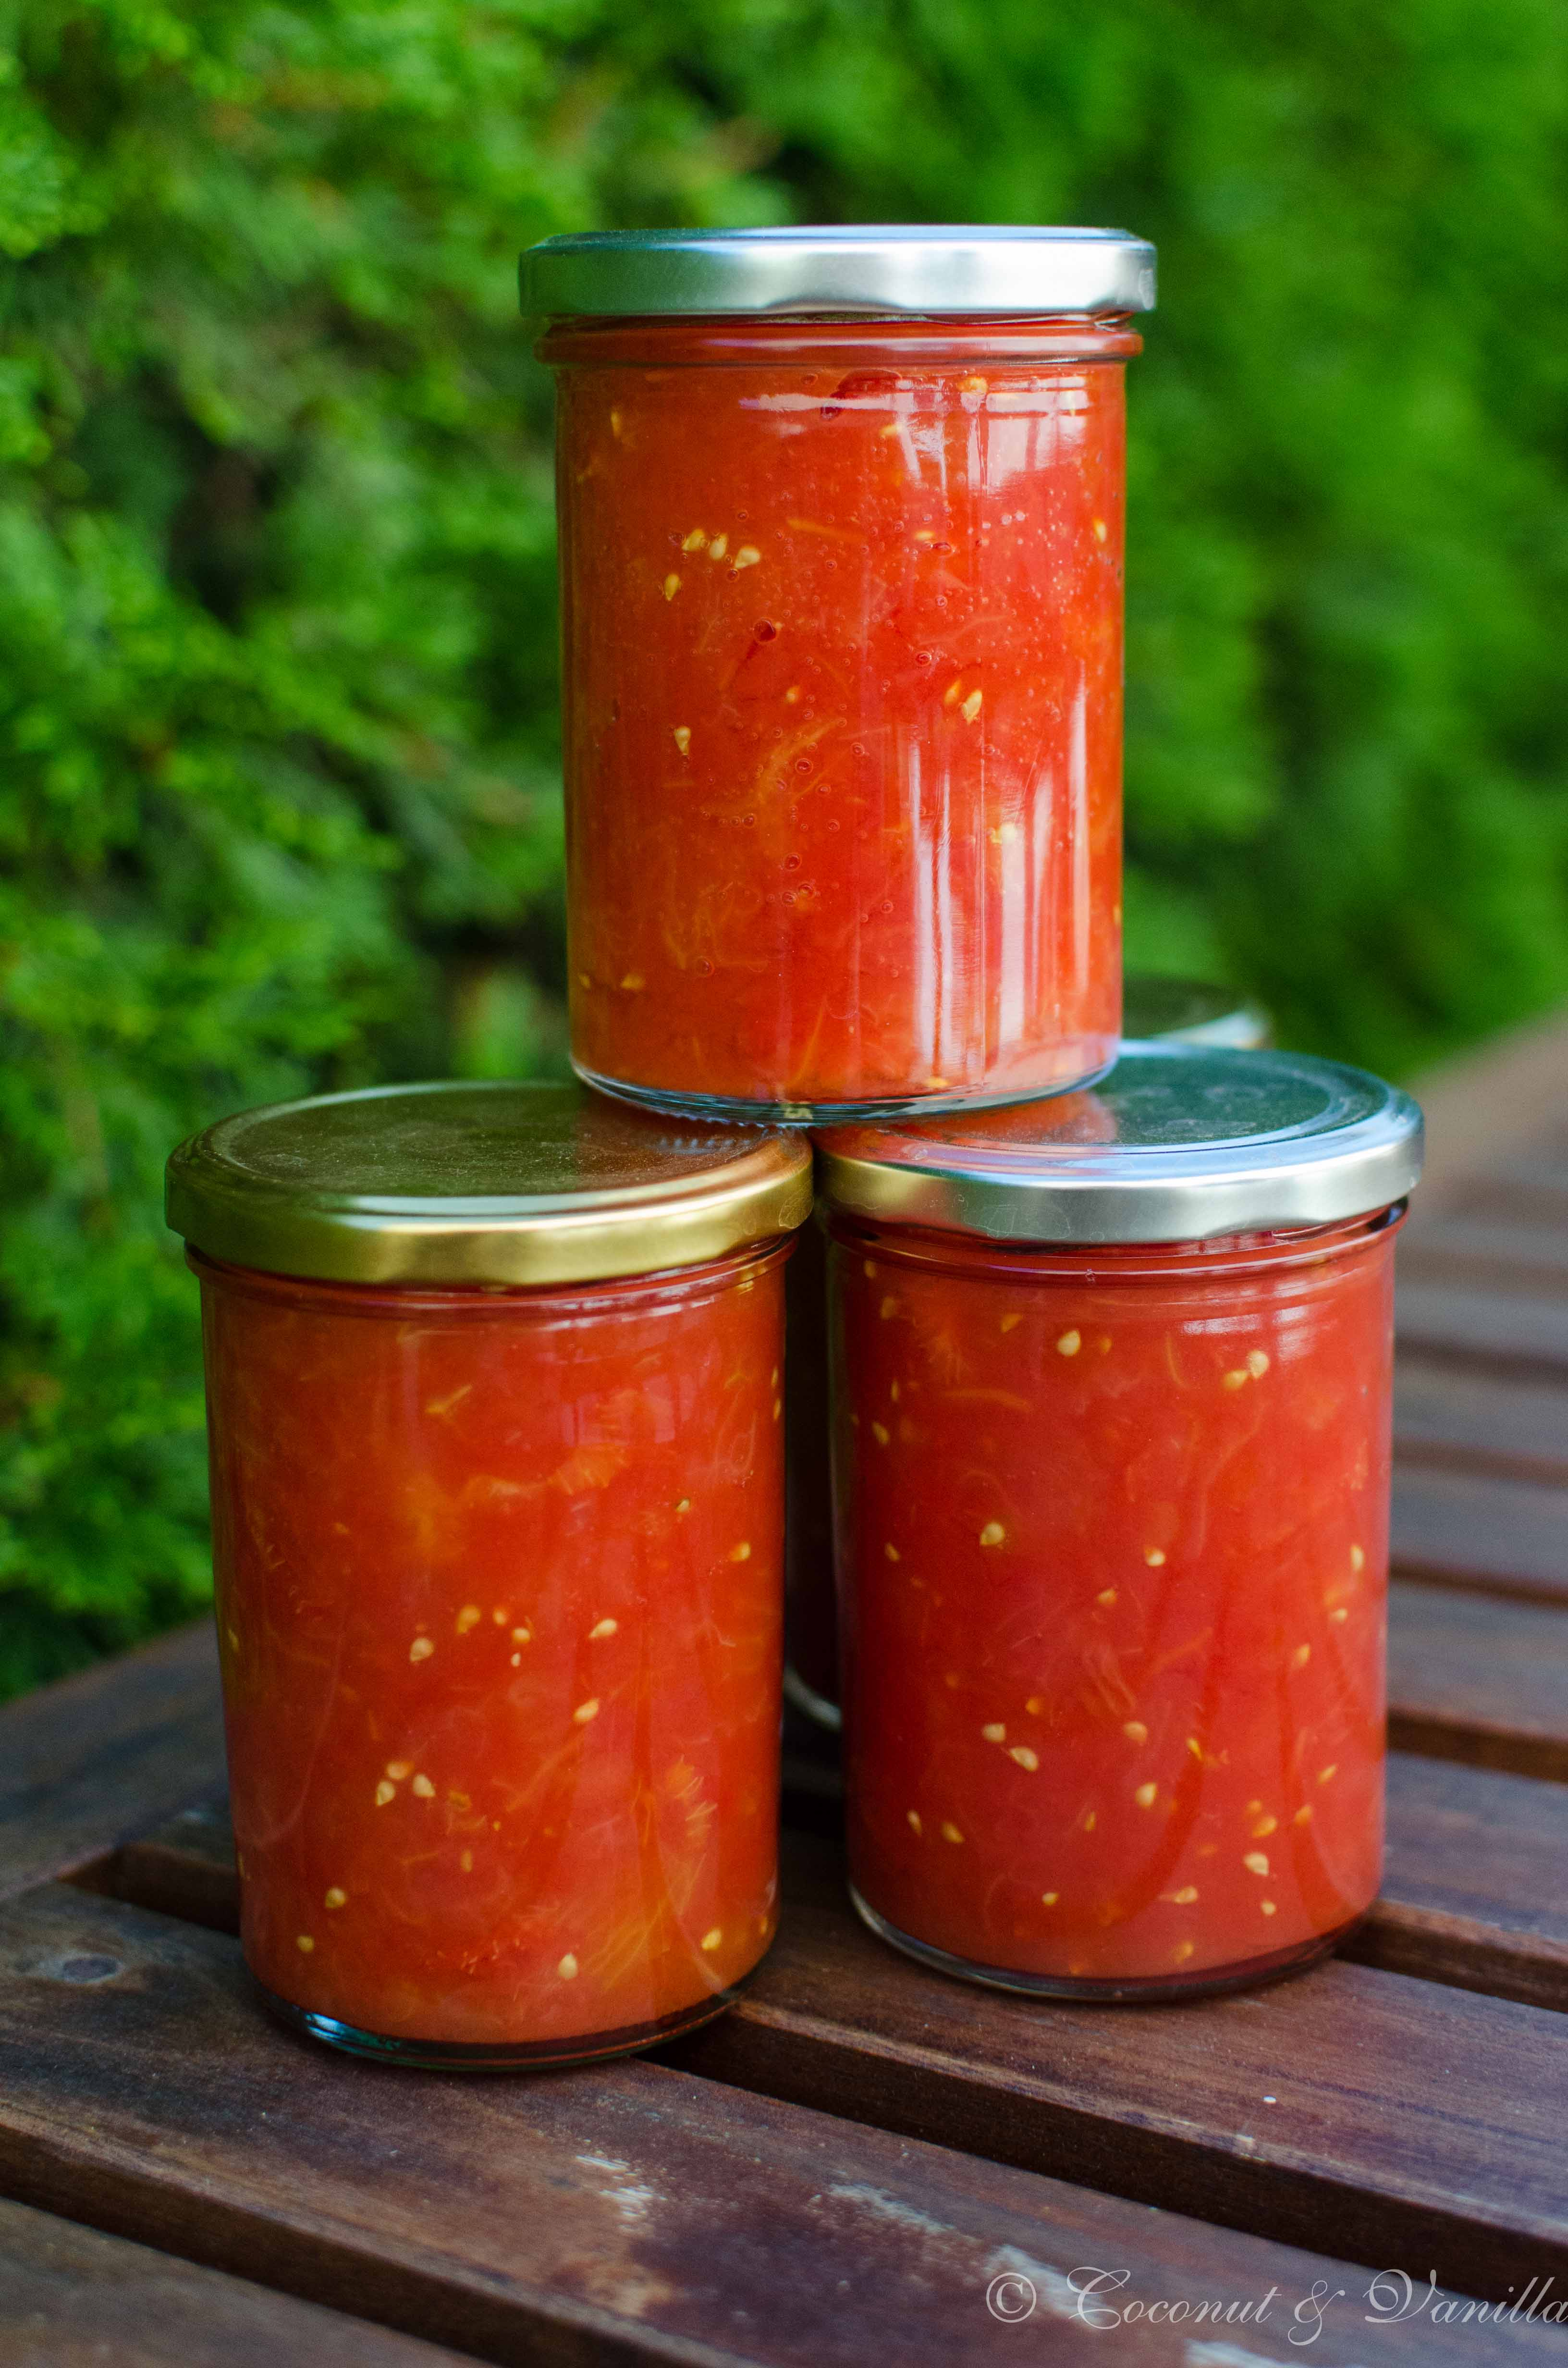 Stückige Tomaten eingemacht - preserved crushed tomatoes by Coconut & Vanilla